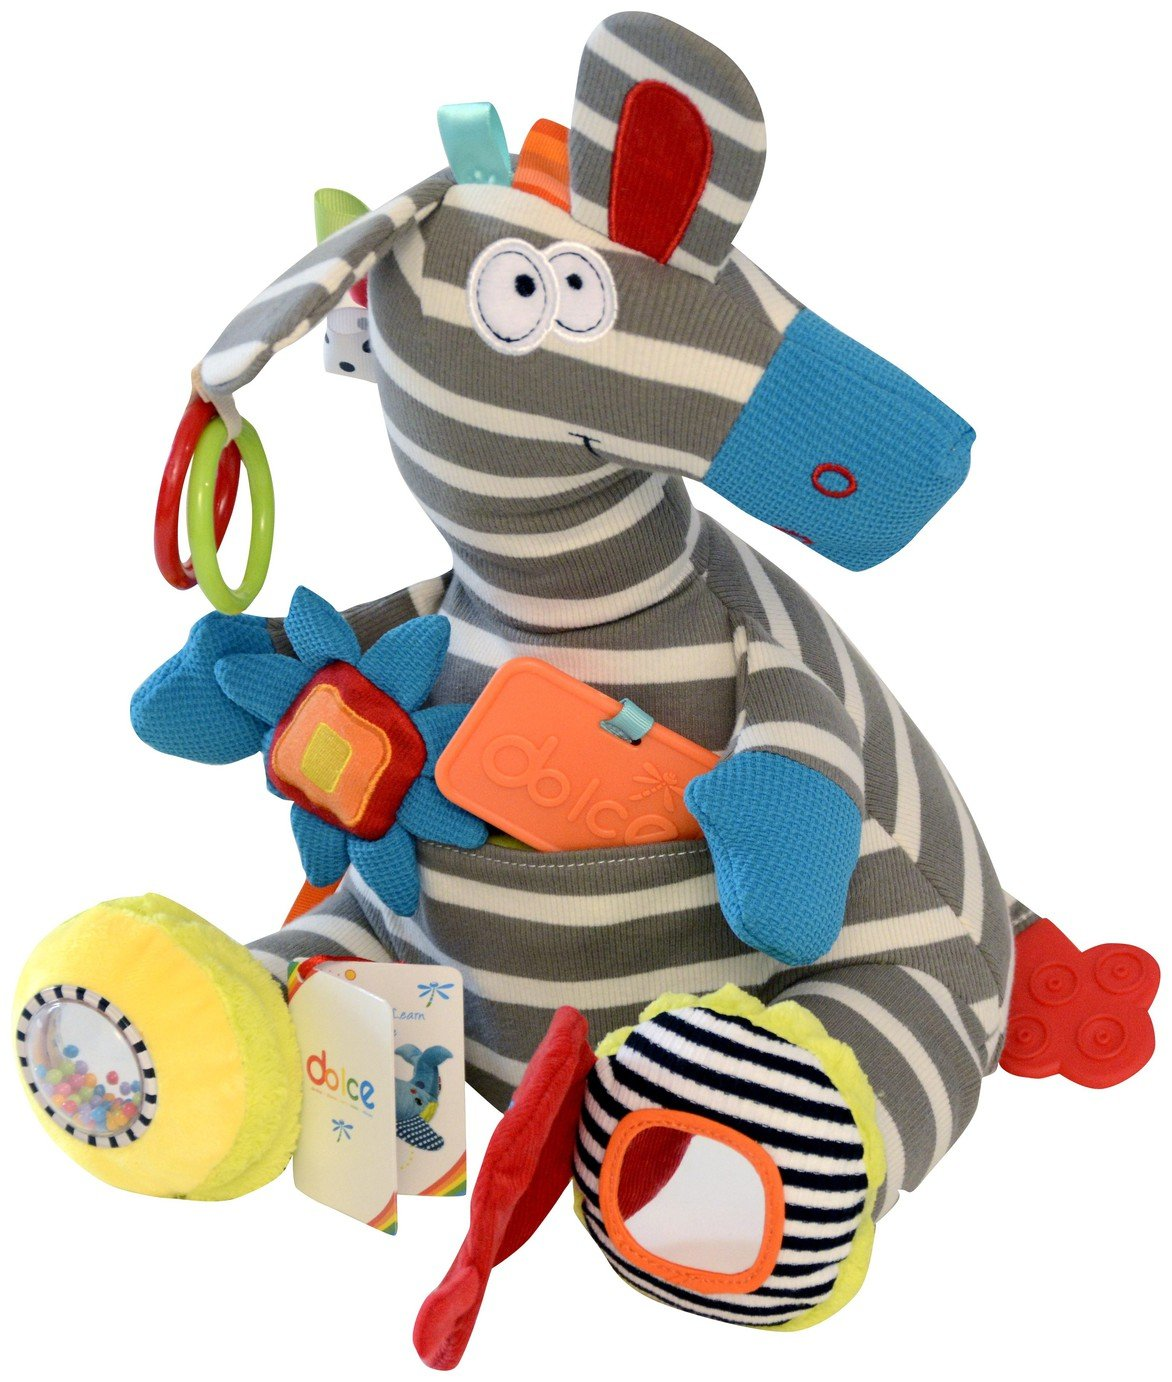 Image of Dolce Activity Zebra